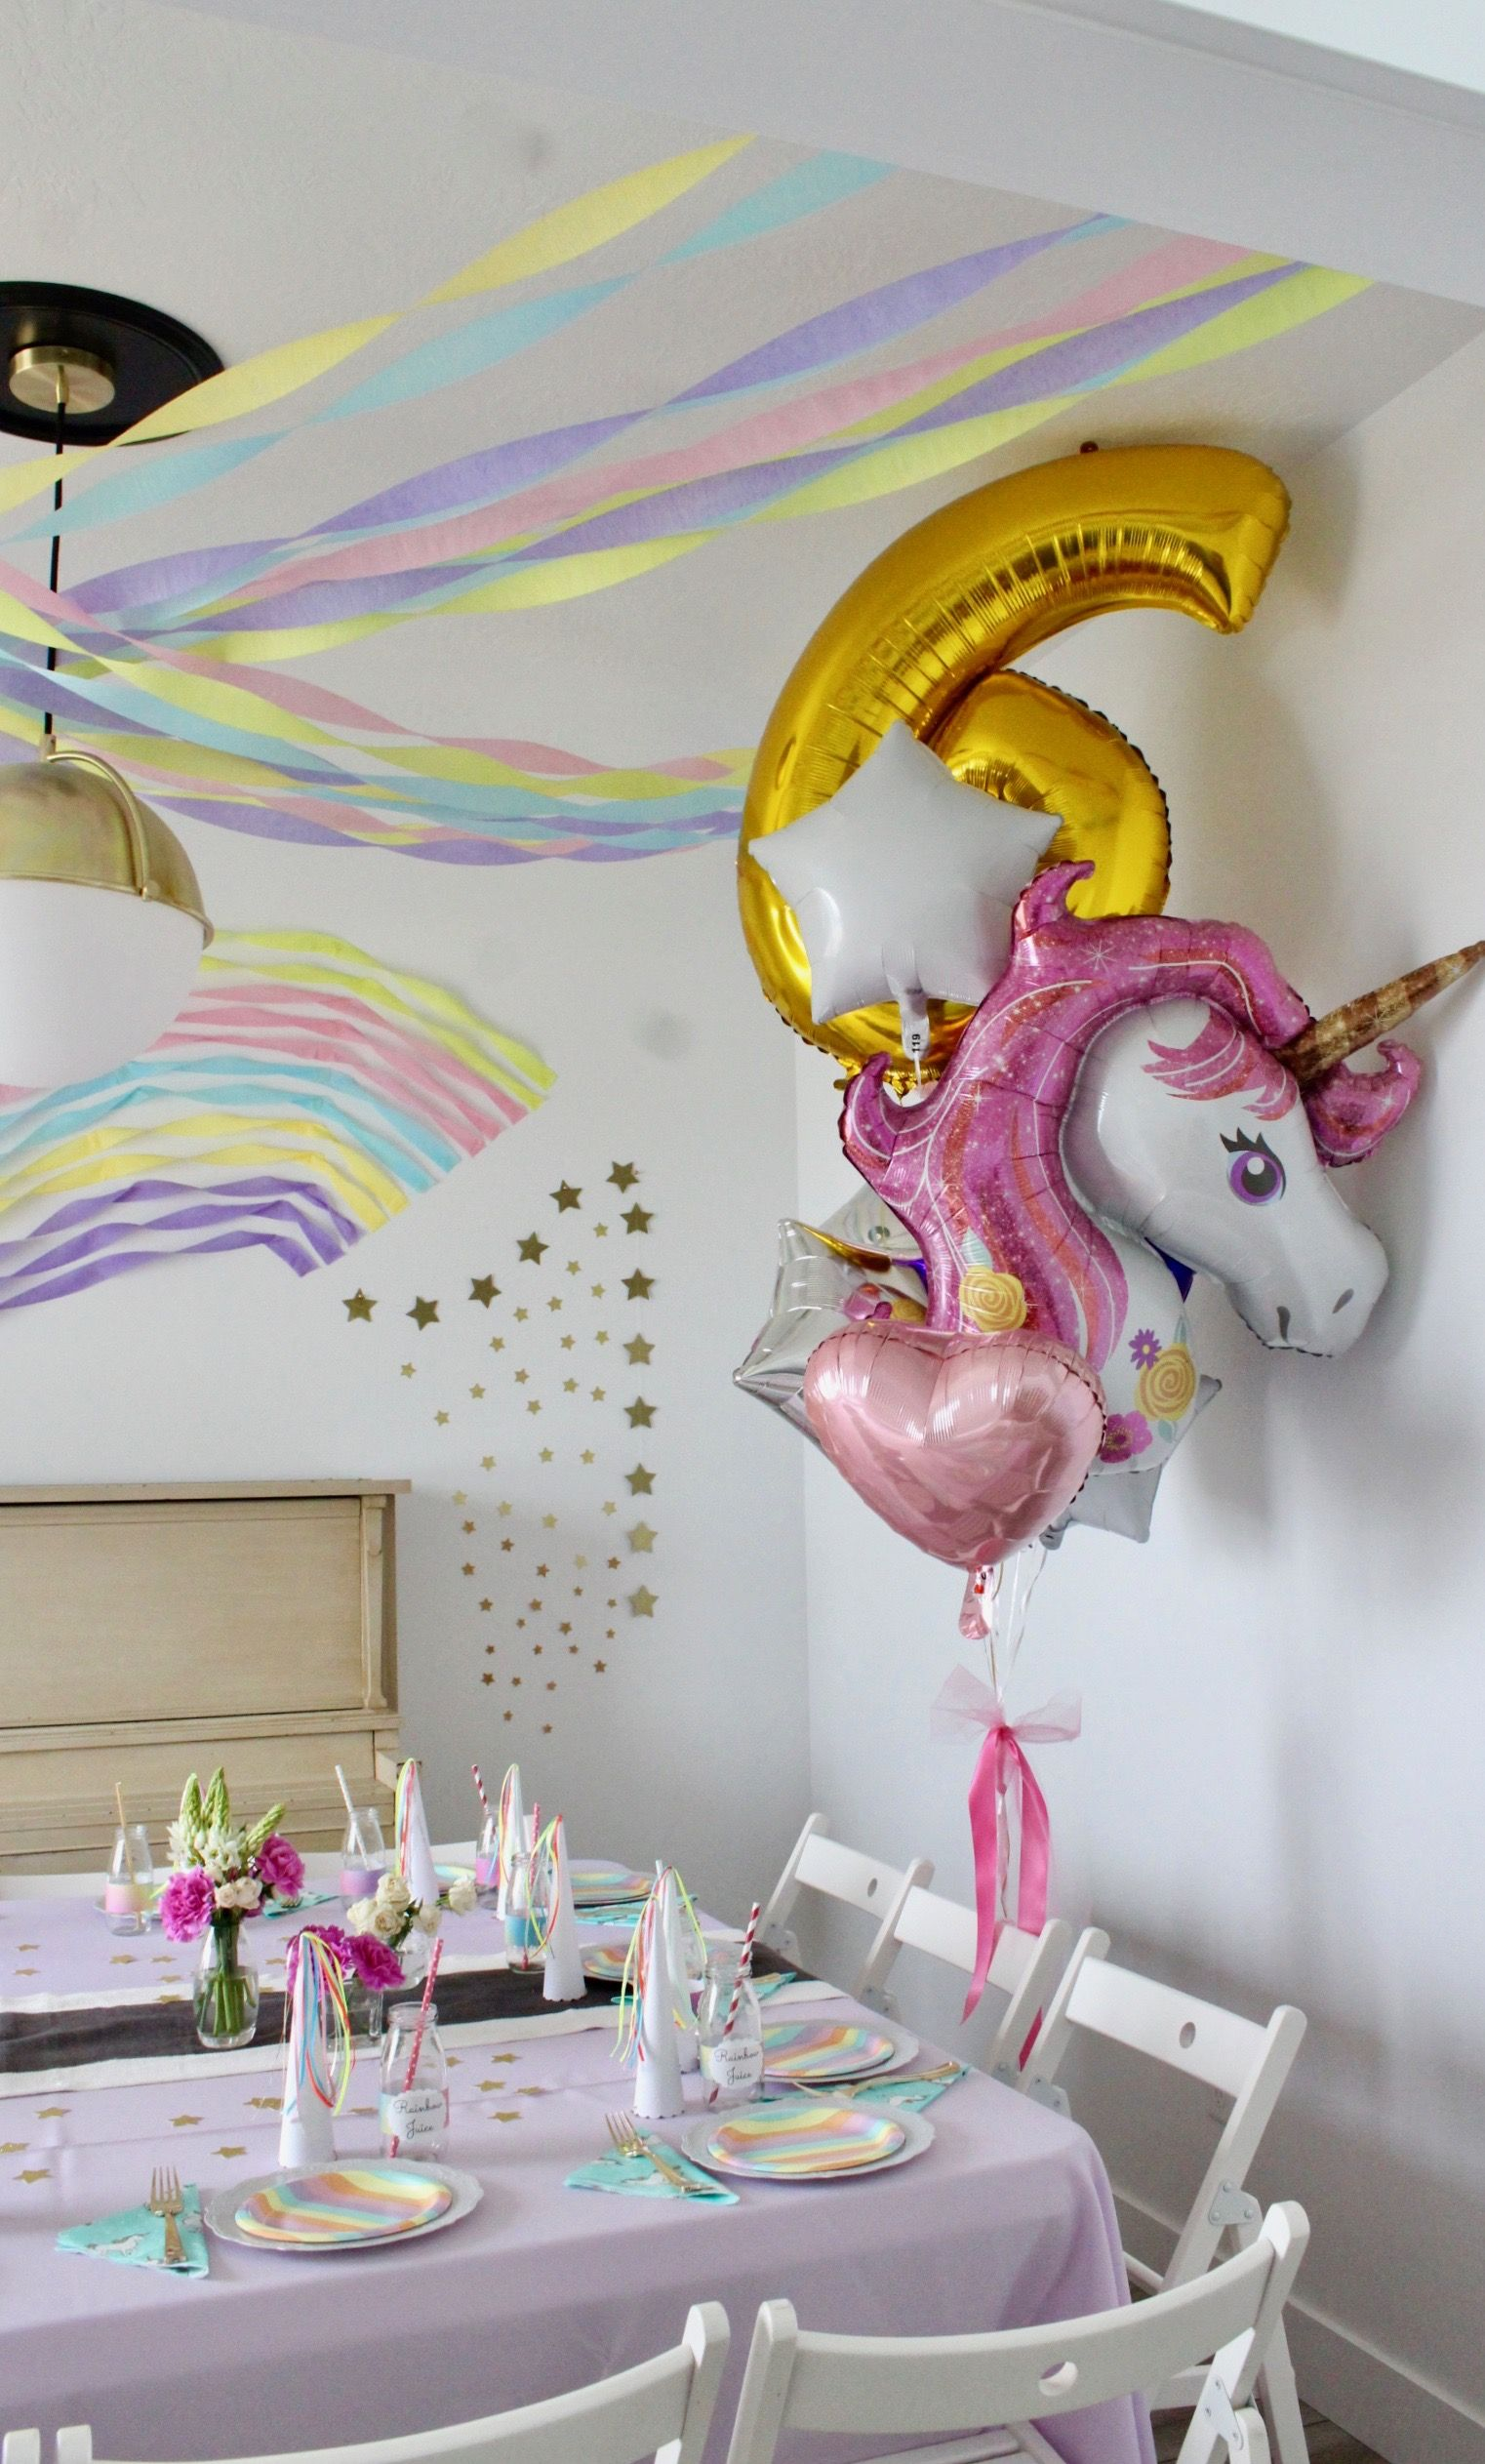 Streamer Decorations For 6 Year Old Unicorn Party